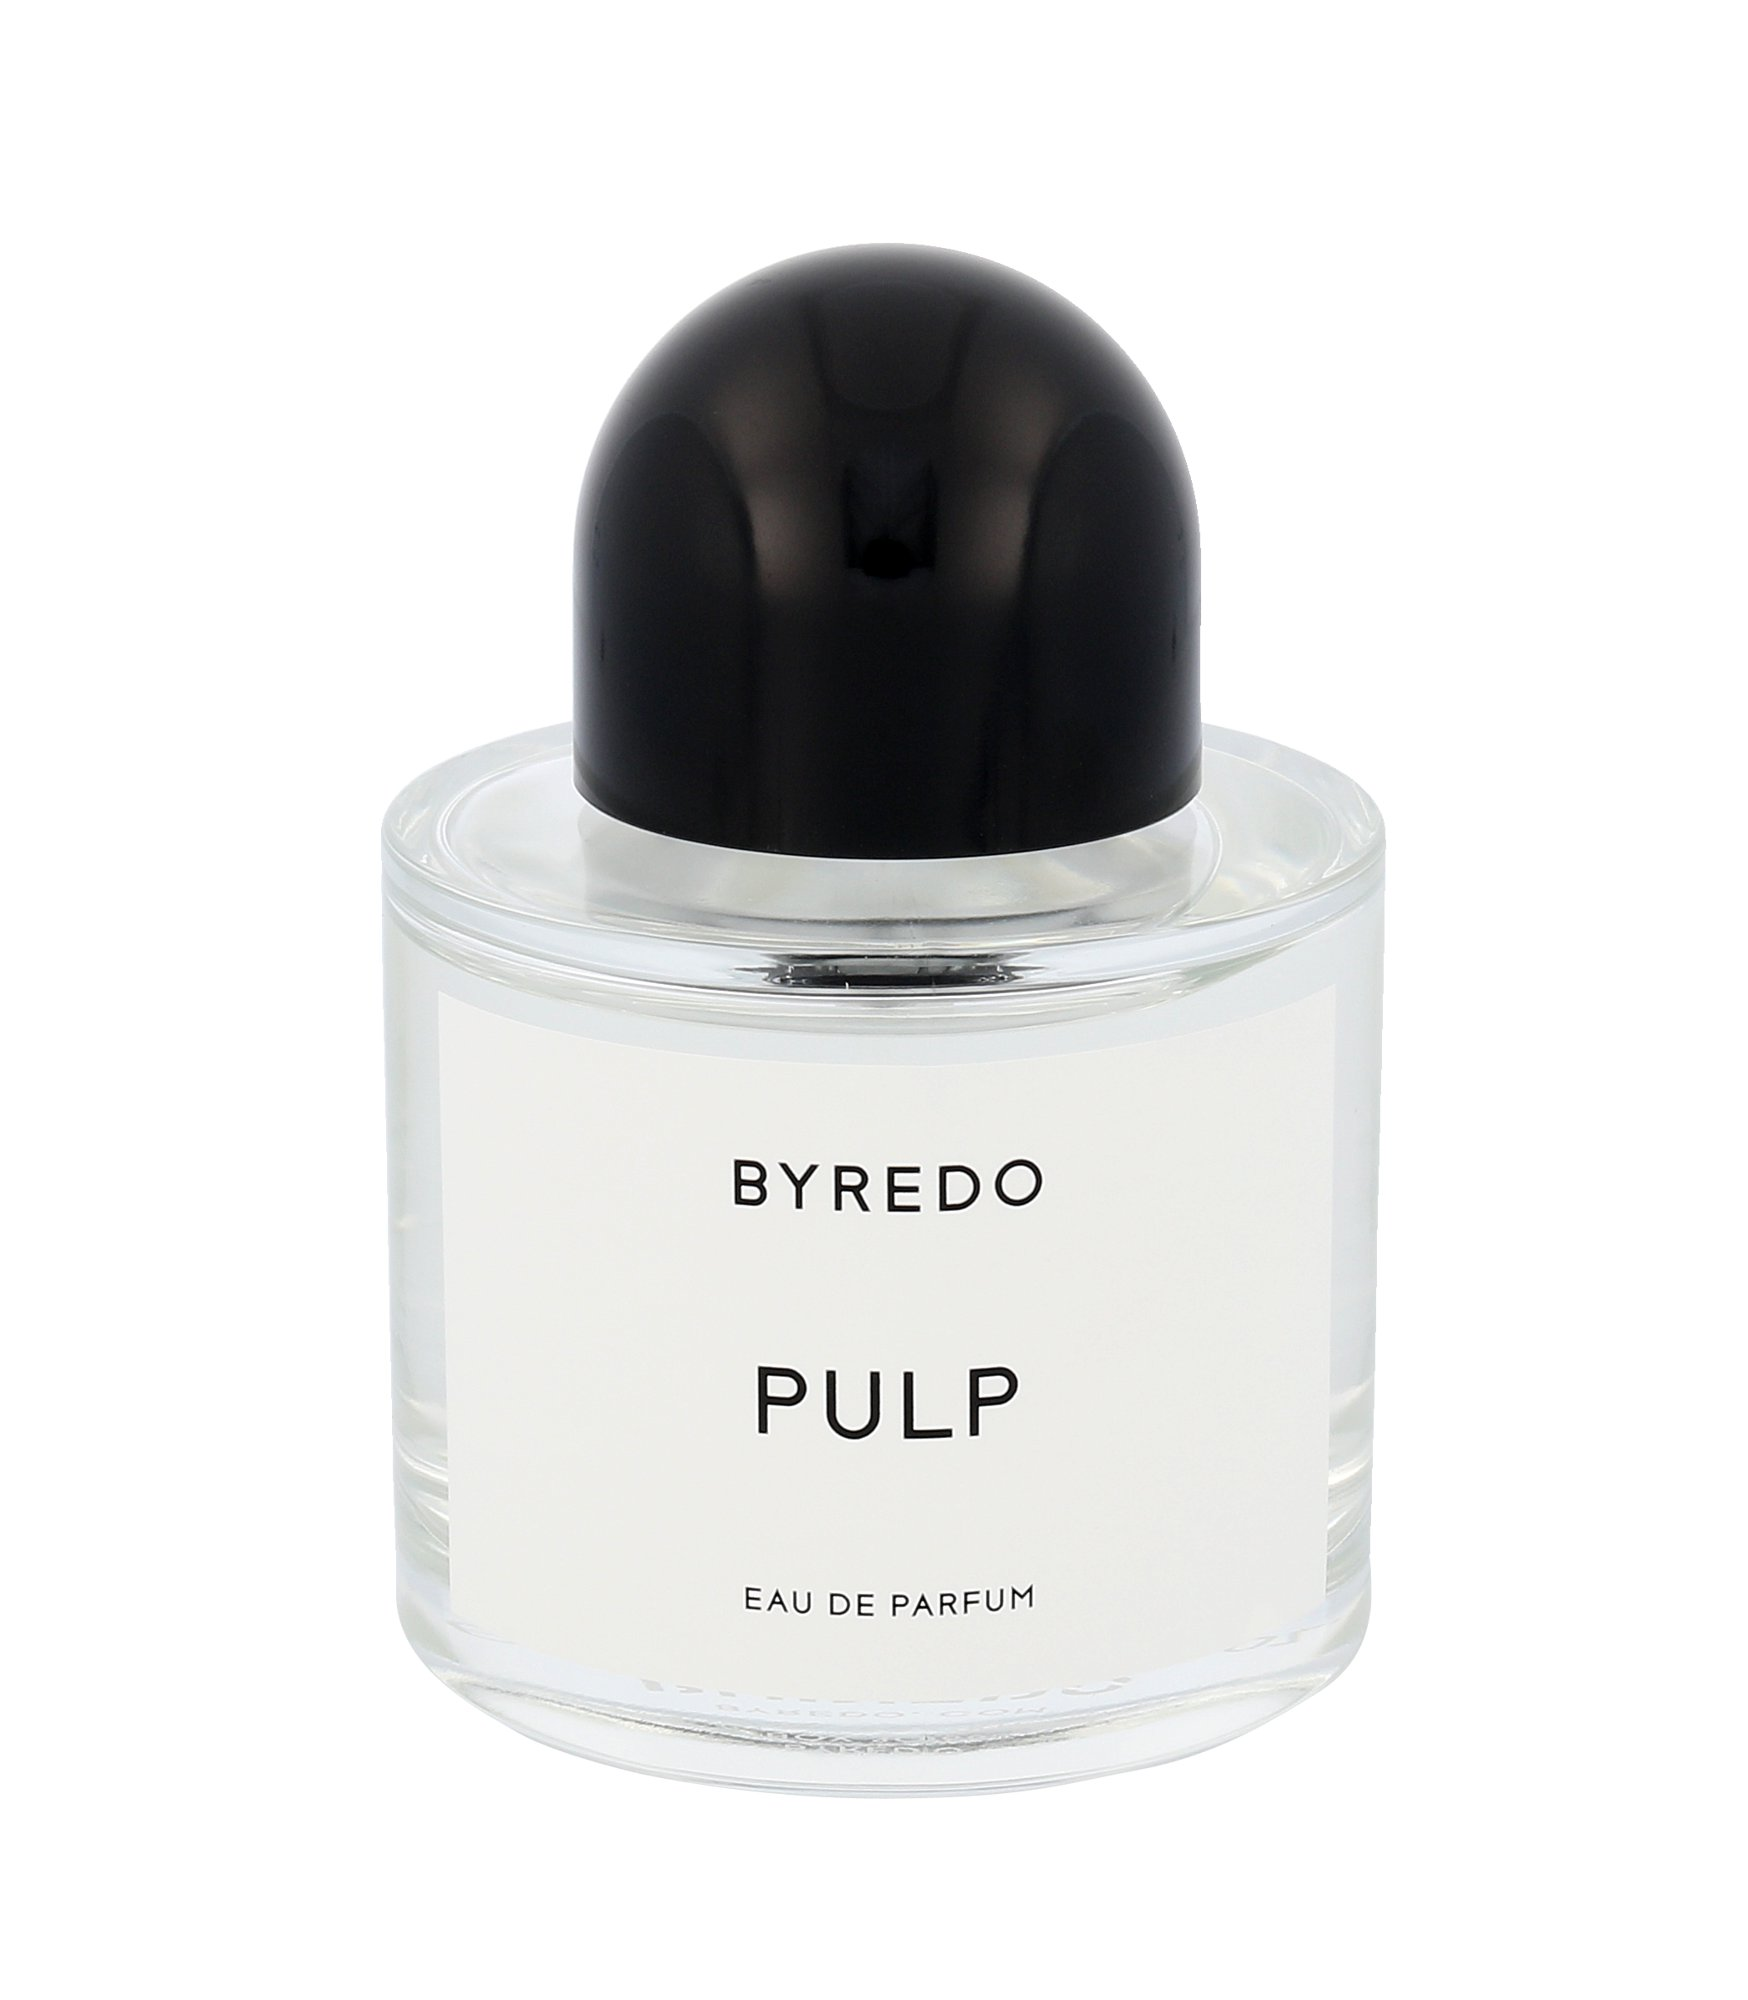 BYREDO Pulp, edp 100ml